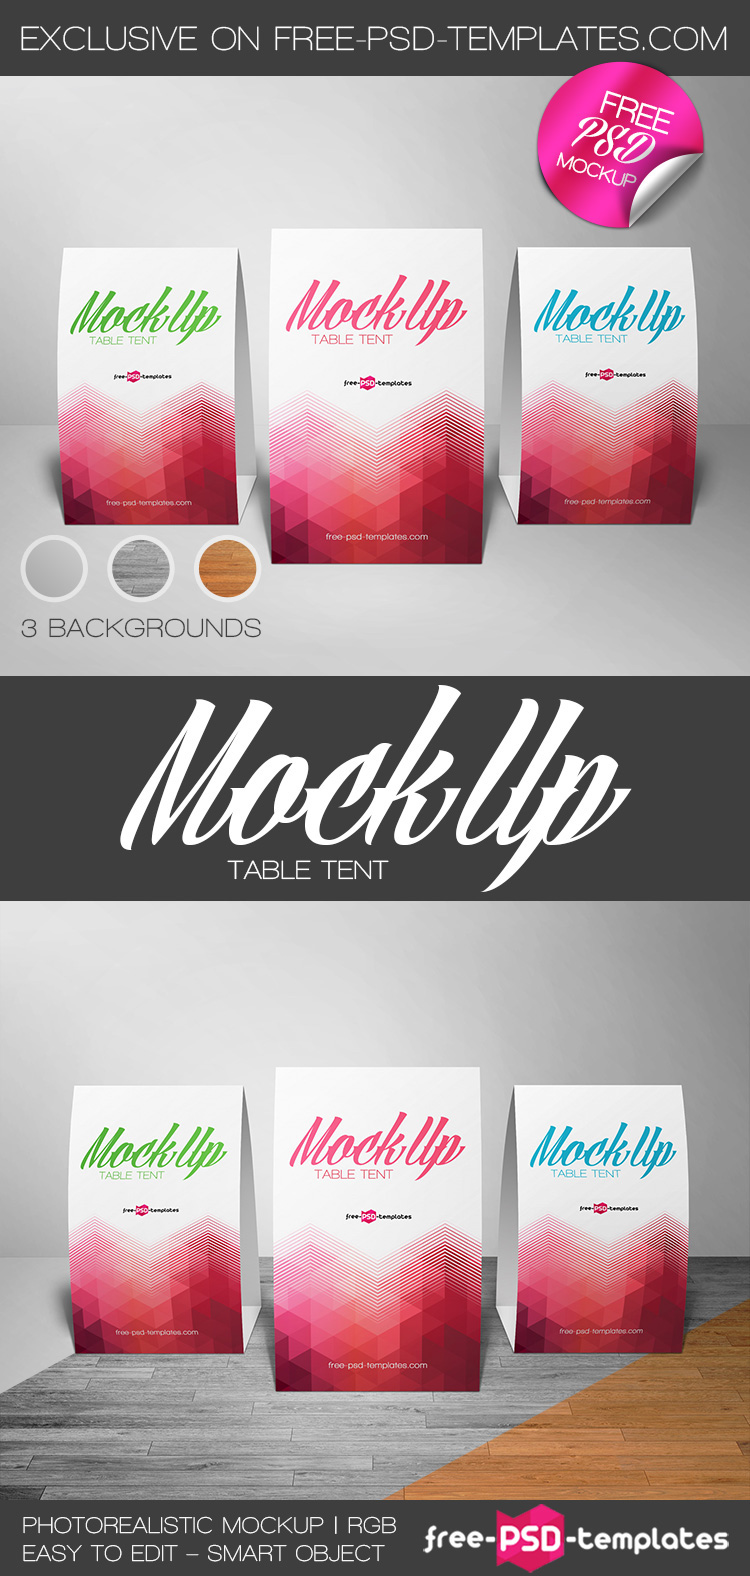 Very beautiful and passionate Free Table Tent Mock-up in PSD is waiting for its new owner! Download this Table Tent Mock-up in PSD easily and make any ... & FREE TABLE TENT MOCK-UP IN PSD on Behance